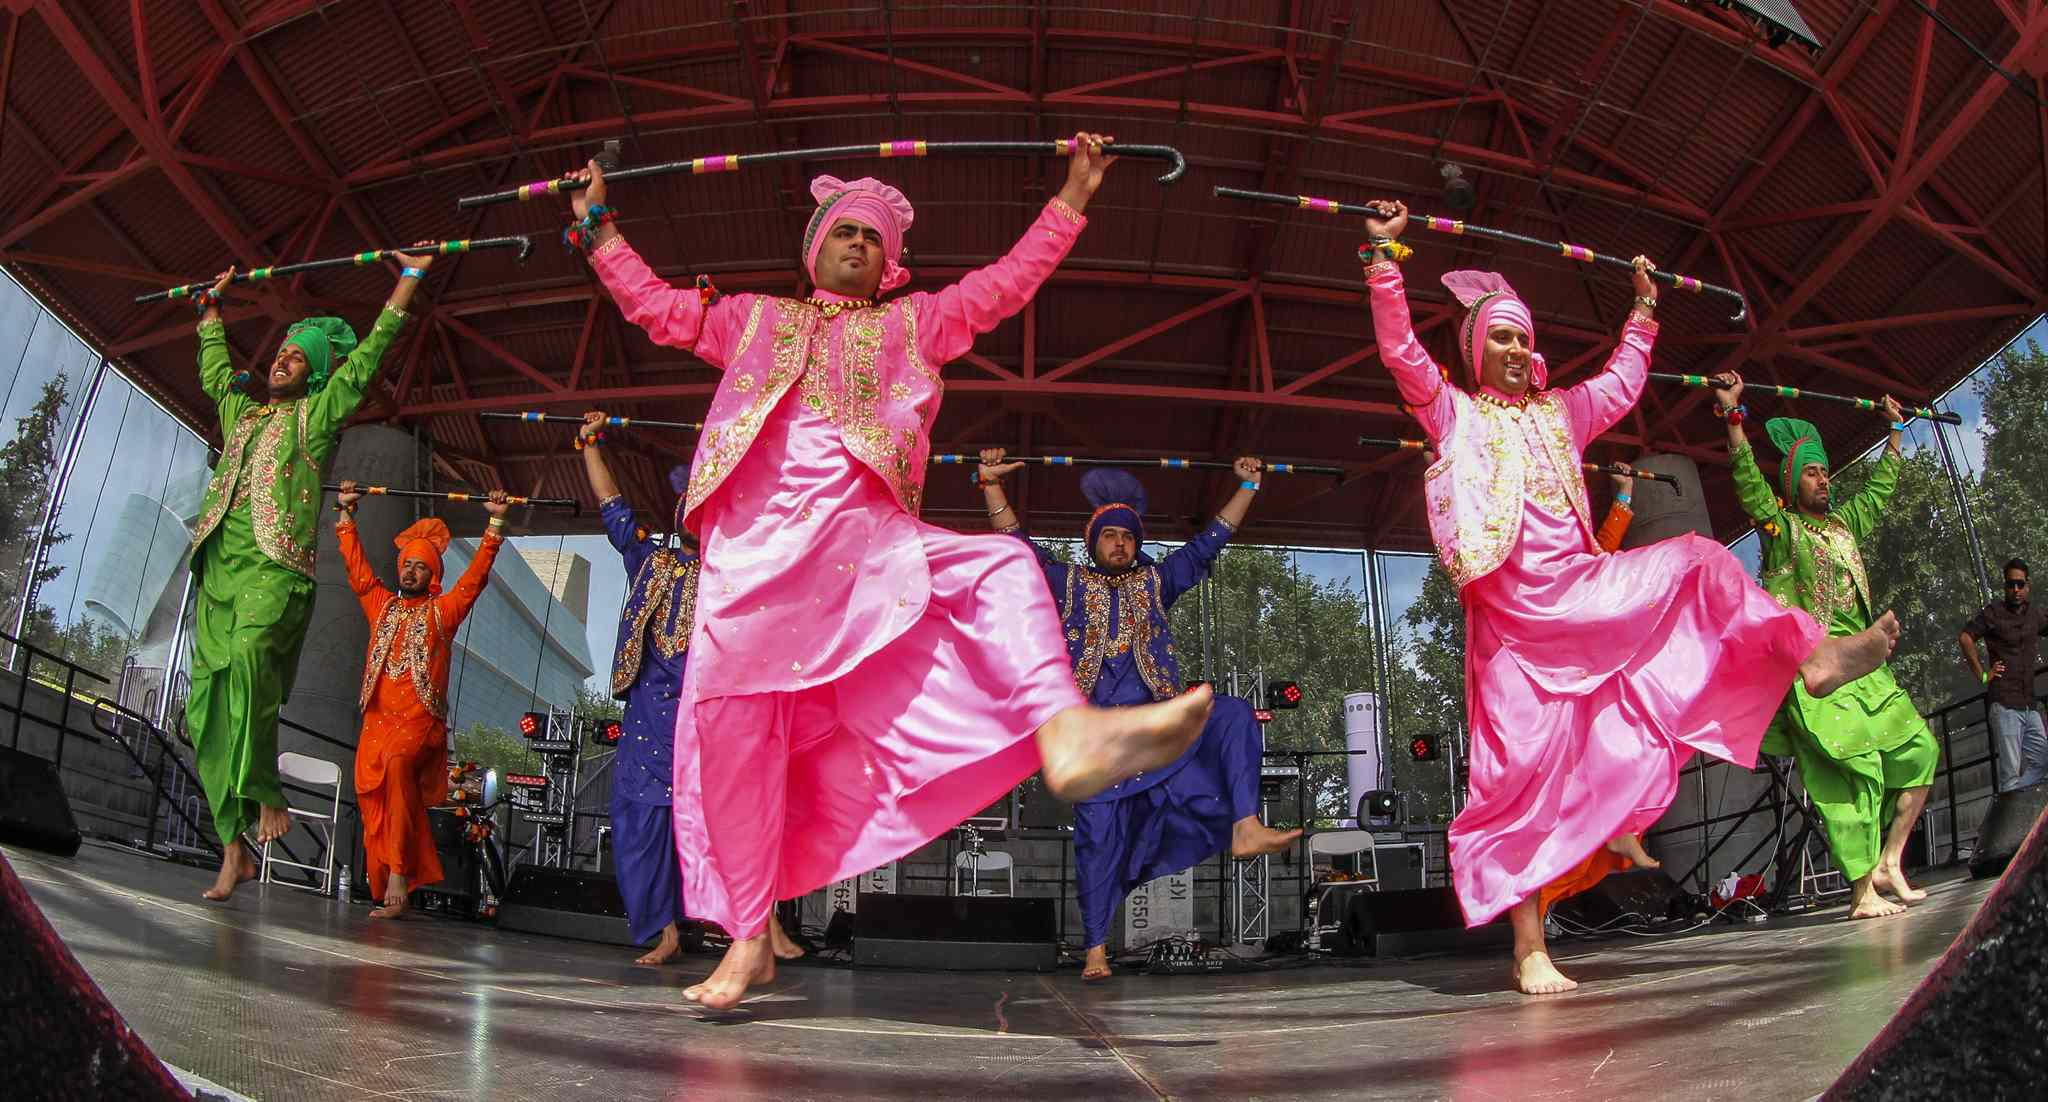 The dance group Hollywood Bhangra performs on the Scotiabank Stage at The Forks during Punjab Day festivities Sunday.